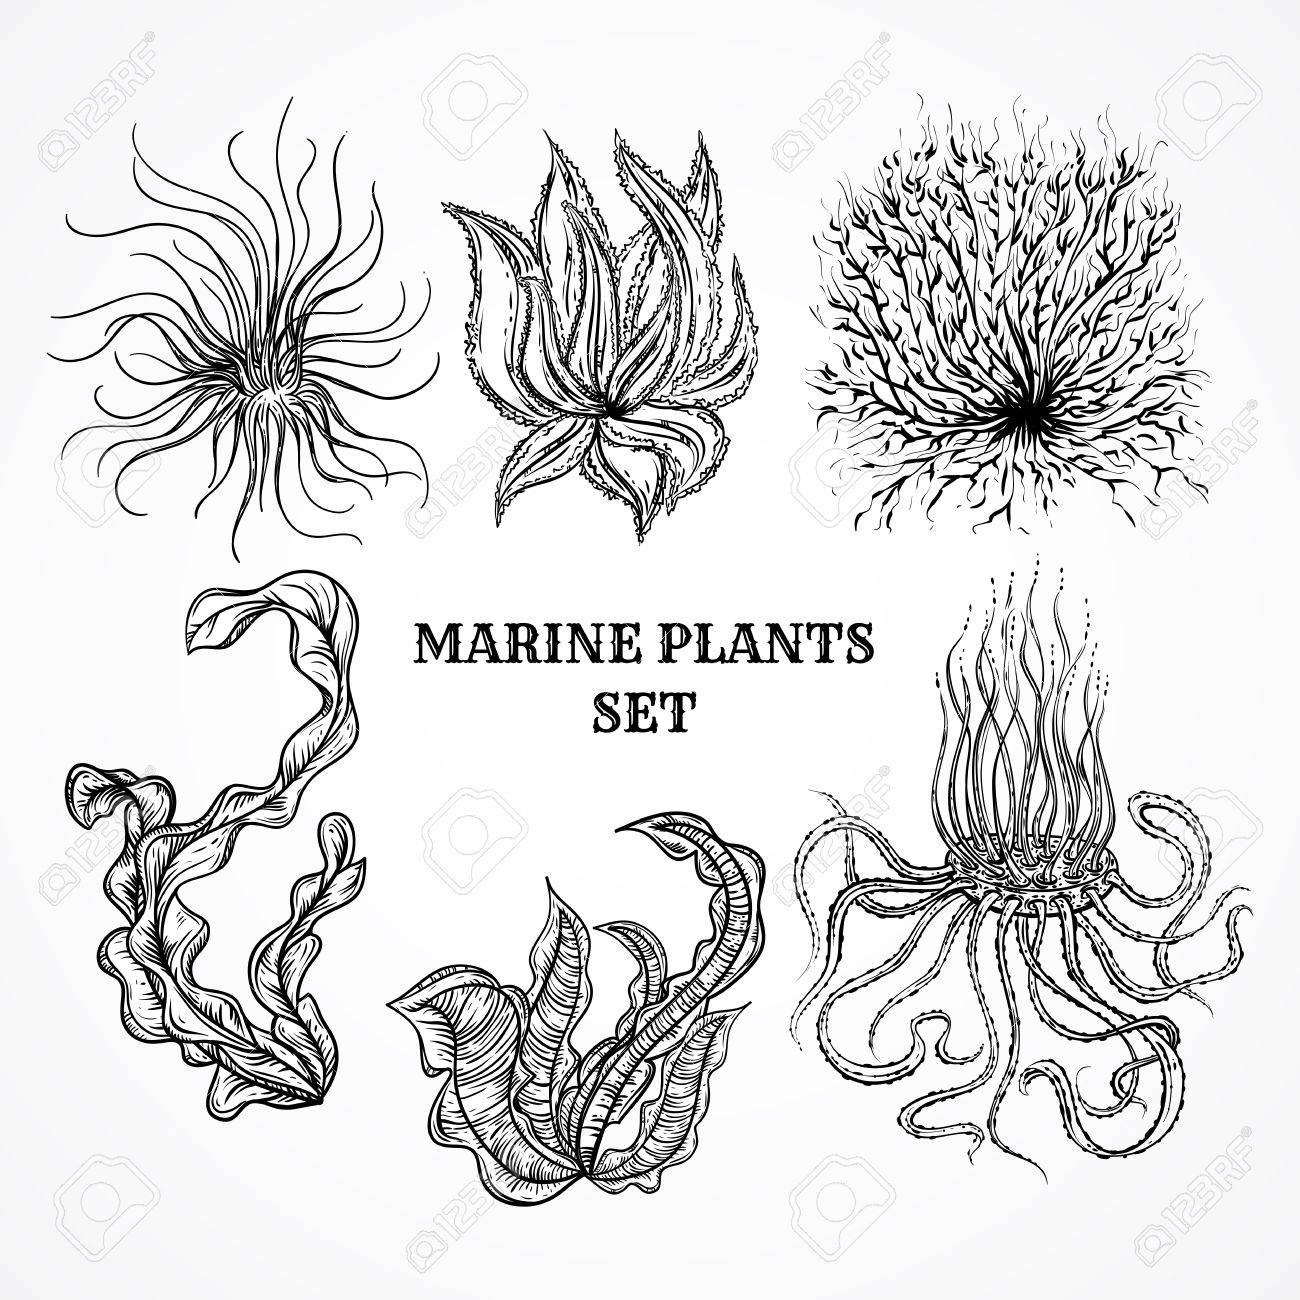 Collection of marine plants, leaves and seaweed. Vintage set of black and white hand drawn marine flora. Isolated vector illustration in line art style.Design for summer beach, decorations. - 45883356